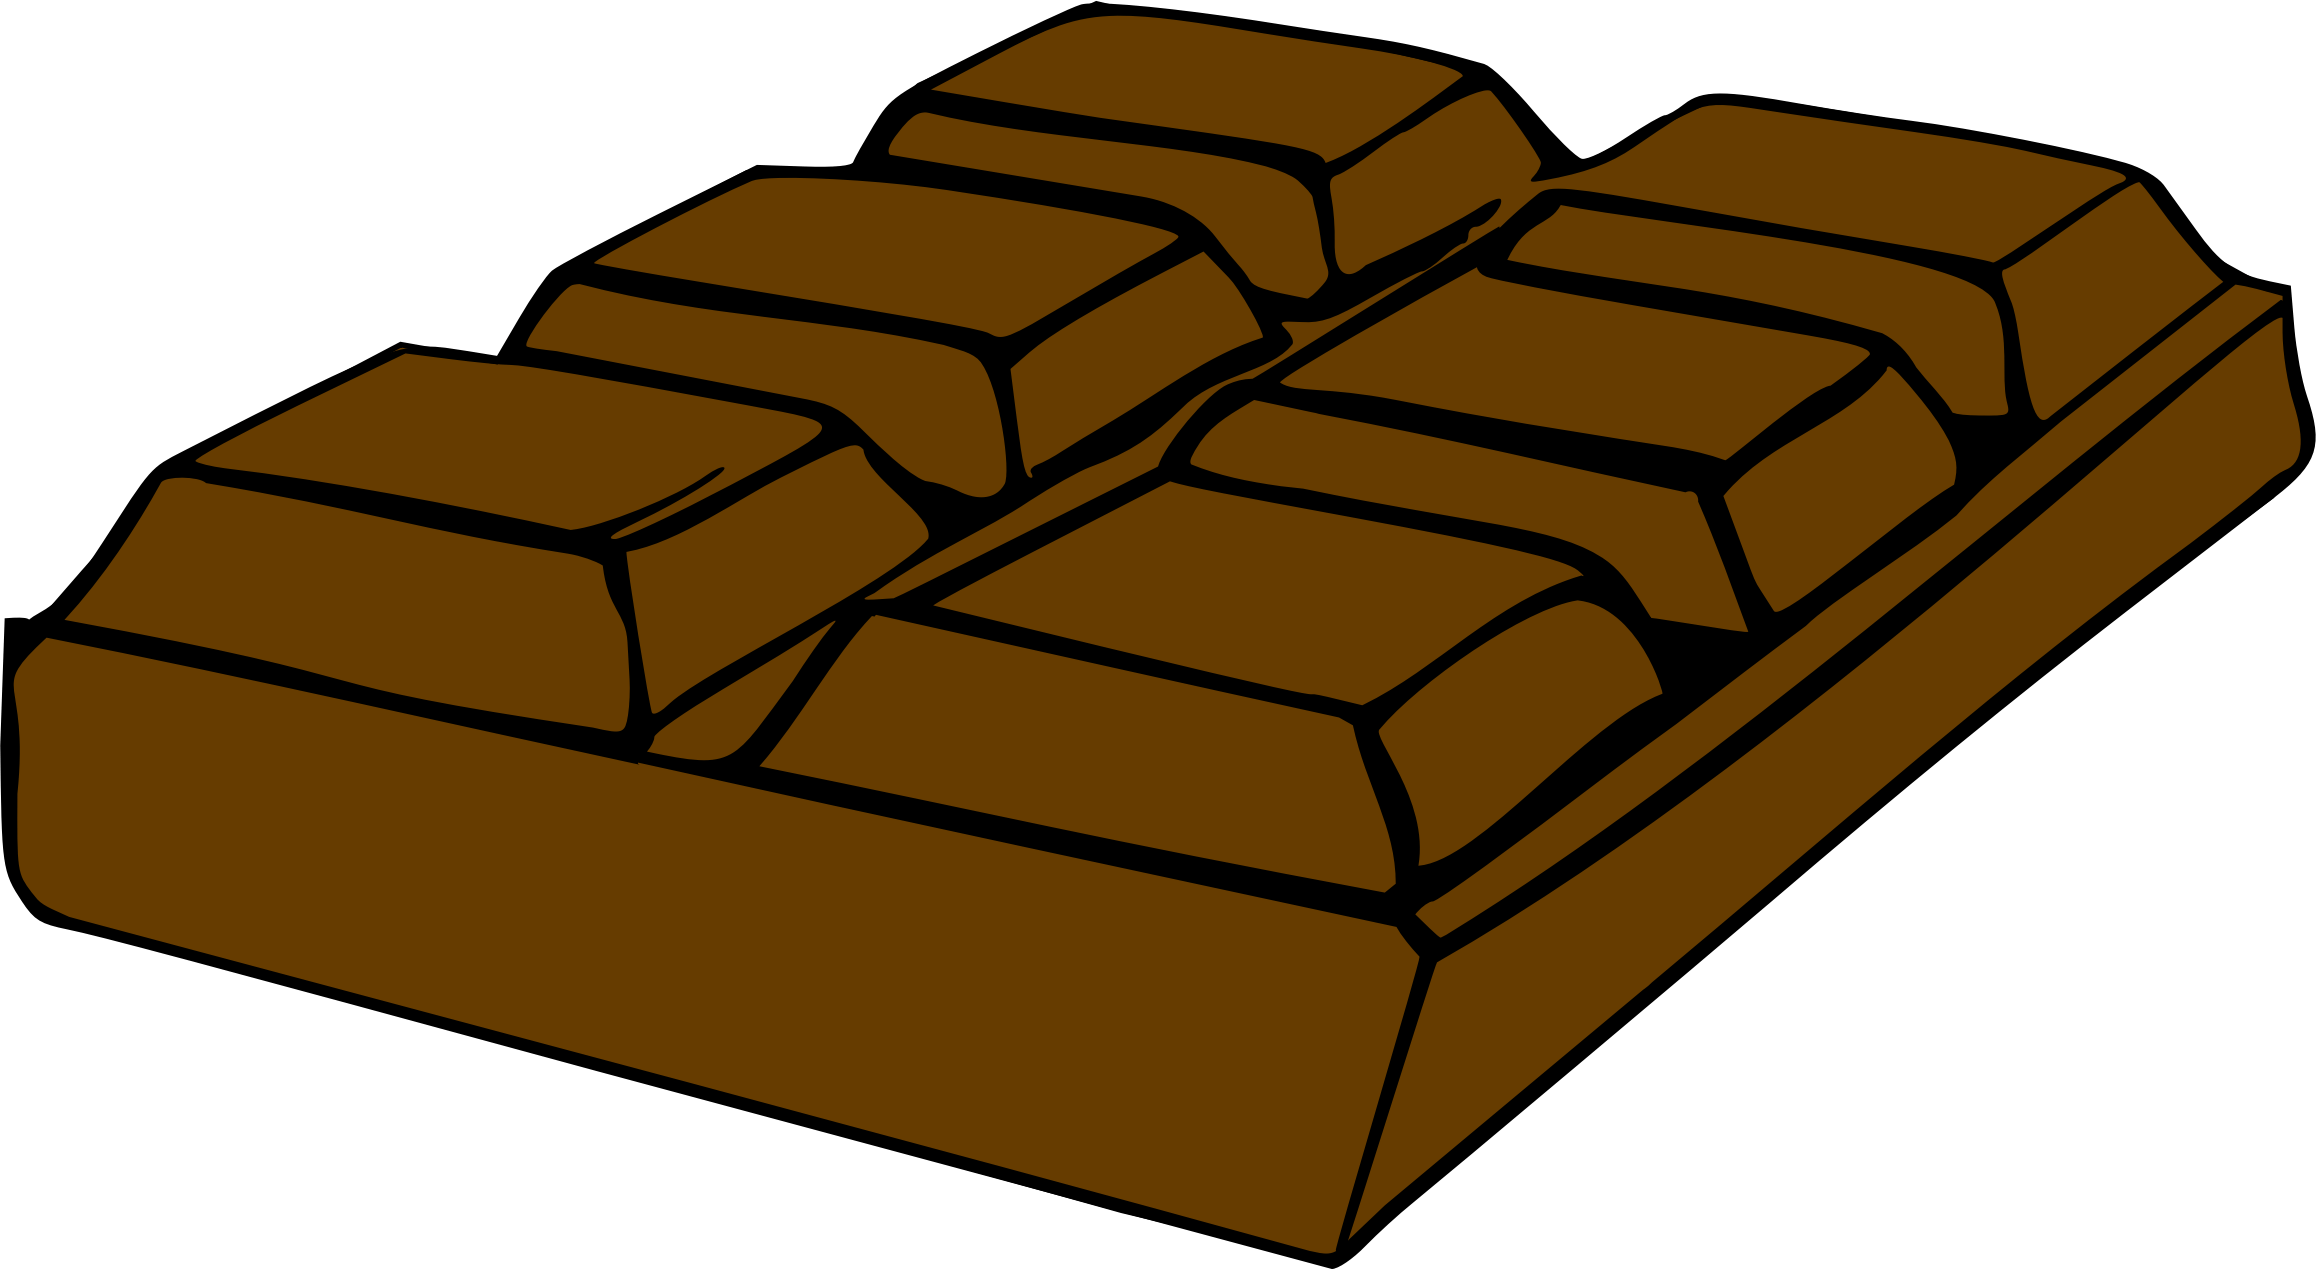 Free Hershey S Chocolate Cliparts Download Free Clip Art